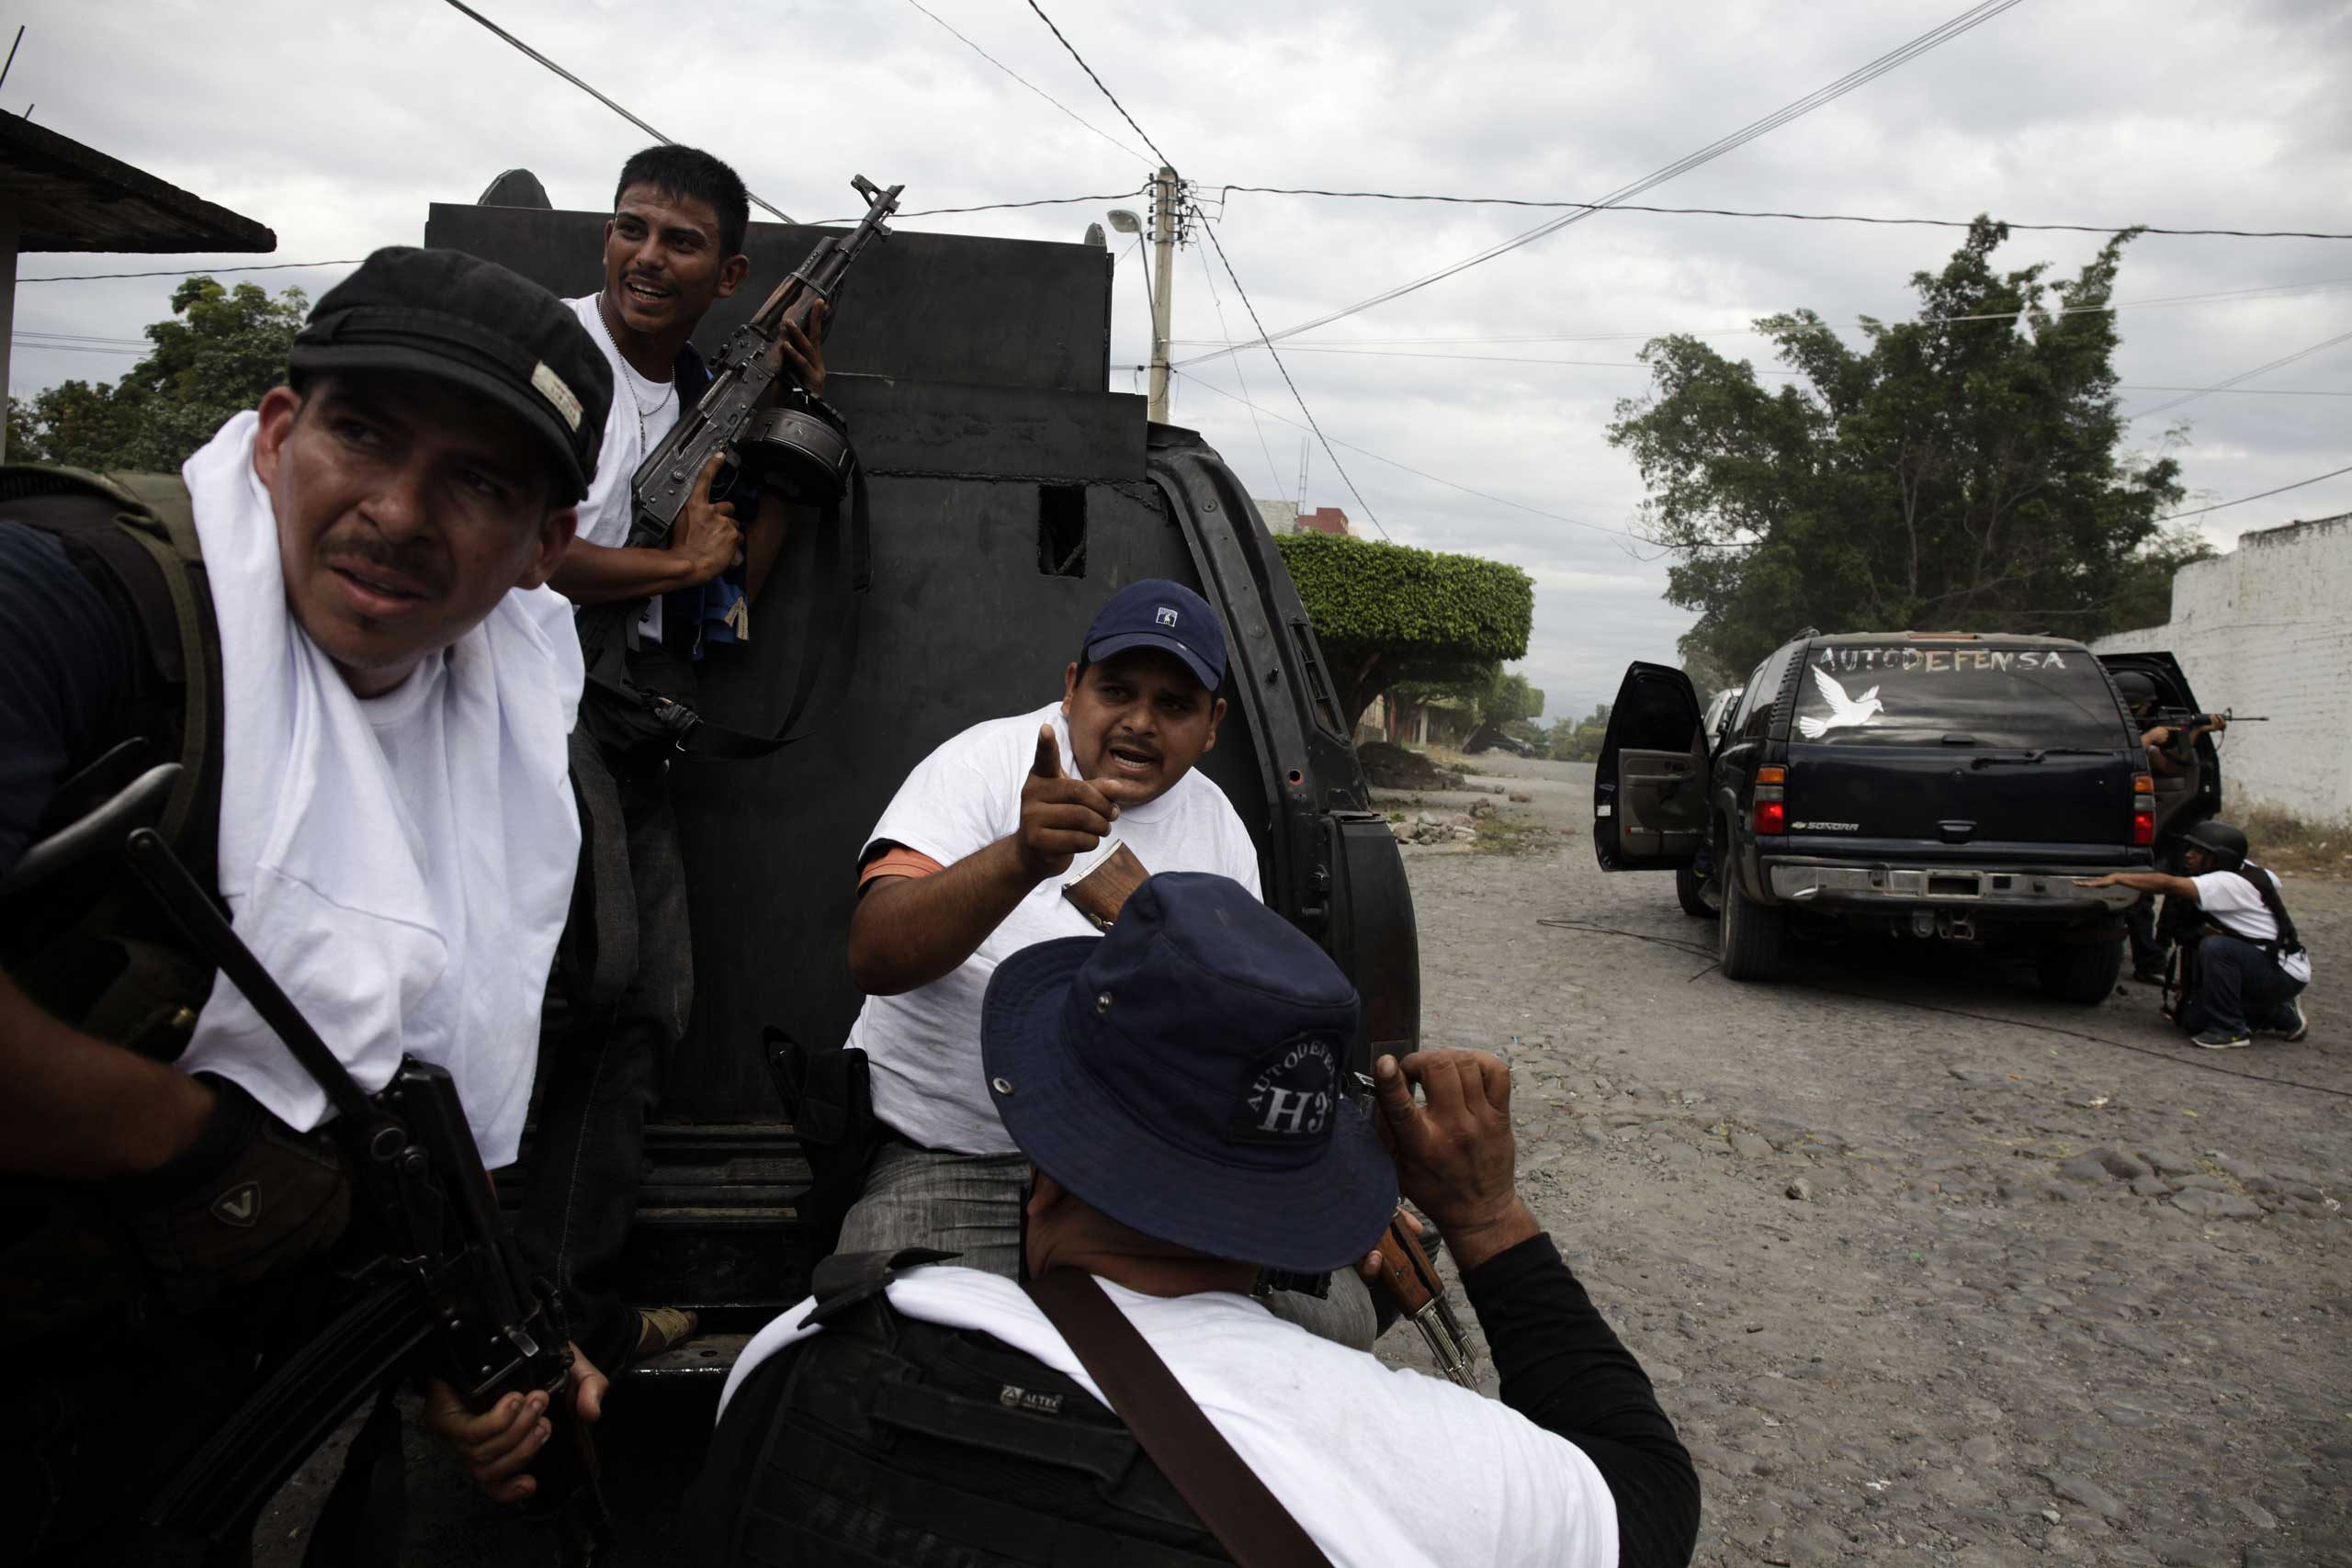 Jan. 12, 2014. A three-hour gunfight between vigilantes and the Knights Templar cartel continues in downtown Nueva Italia, Michoac‡n.